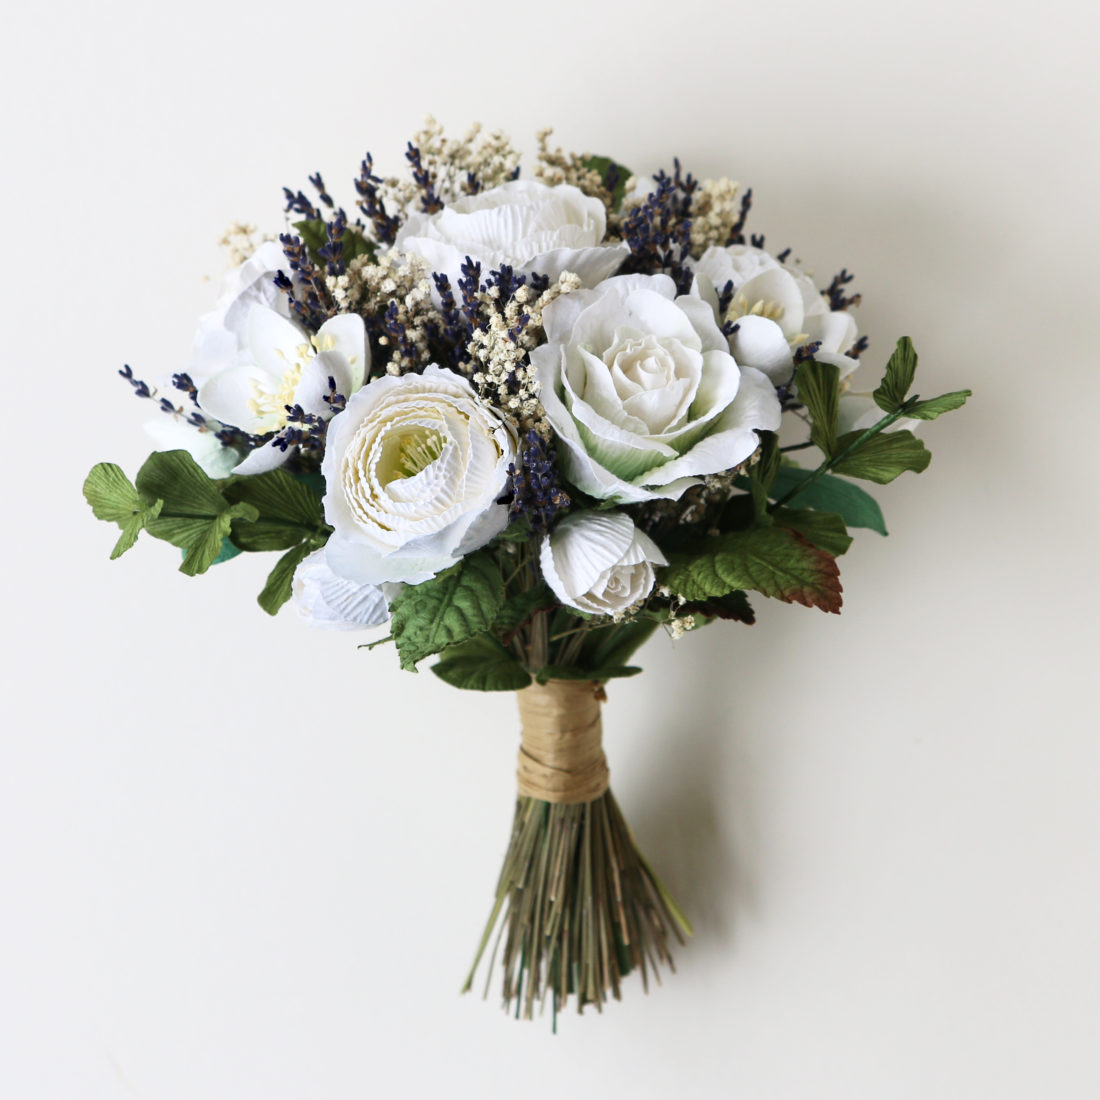 Dried Wedding Bouquet with Paper Flowers